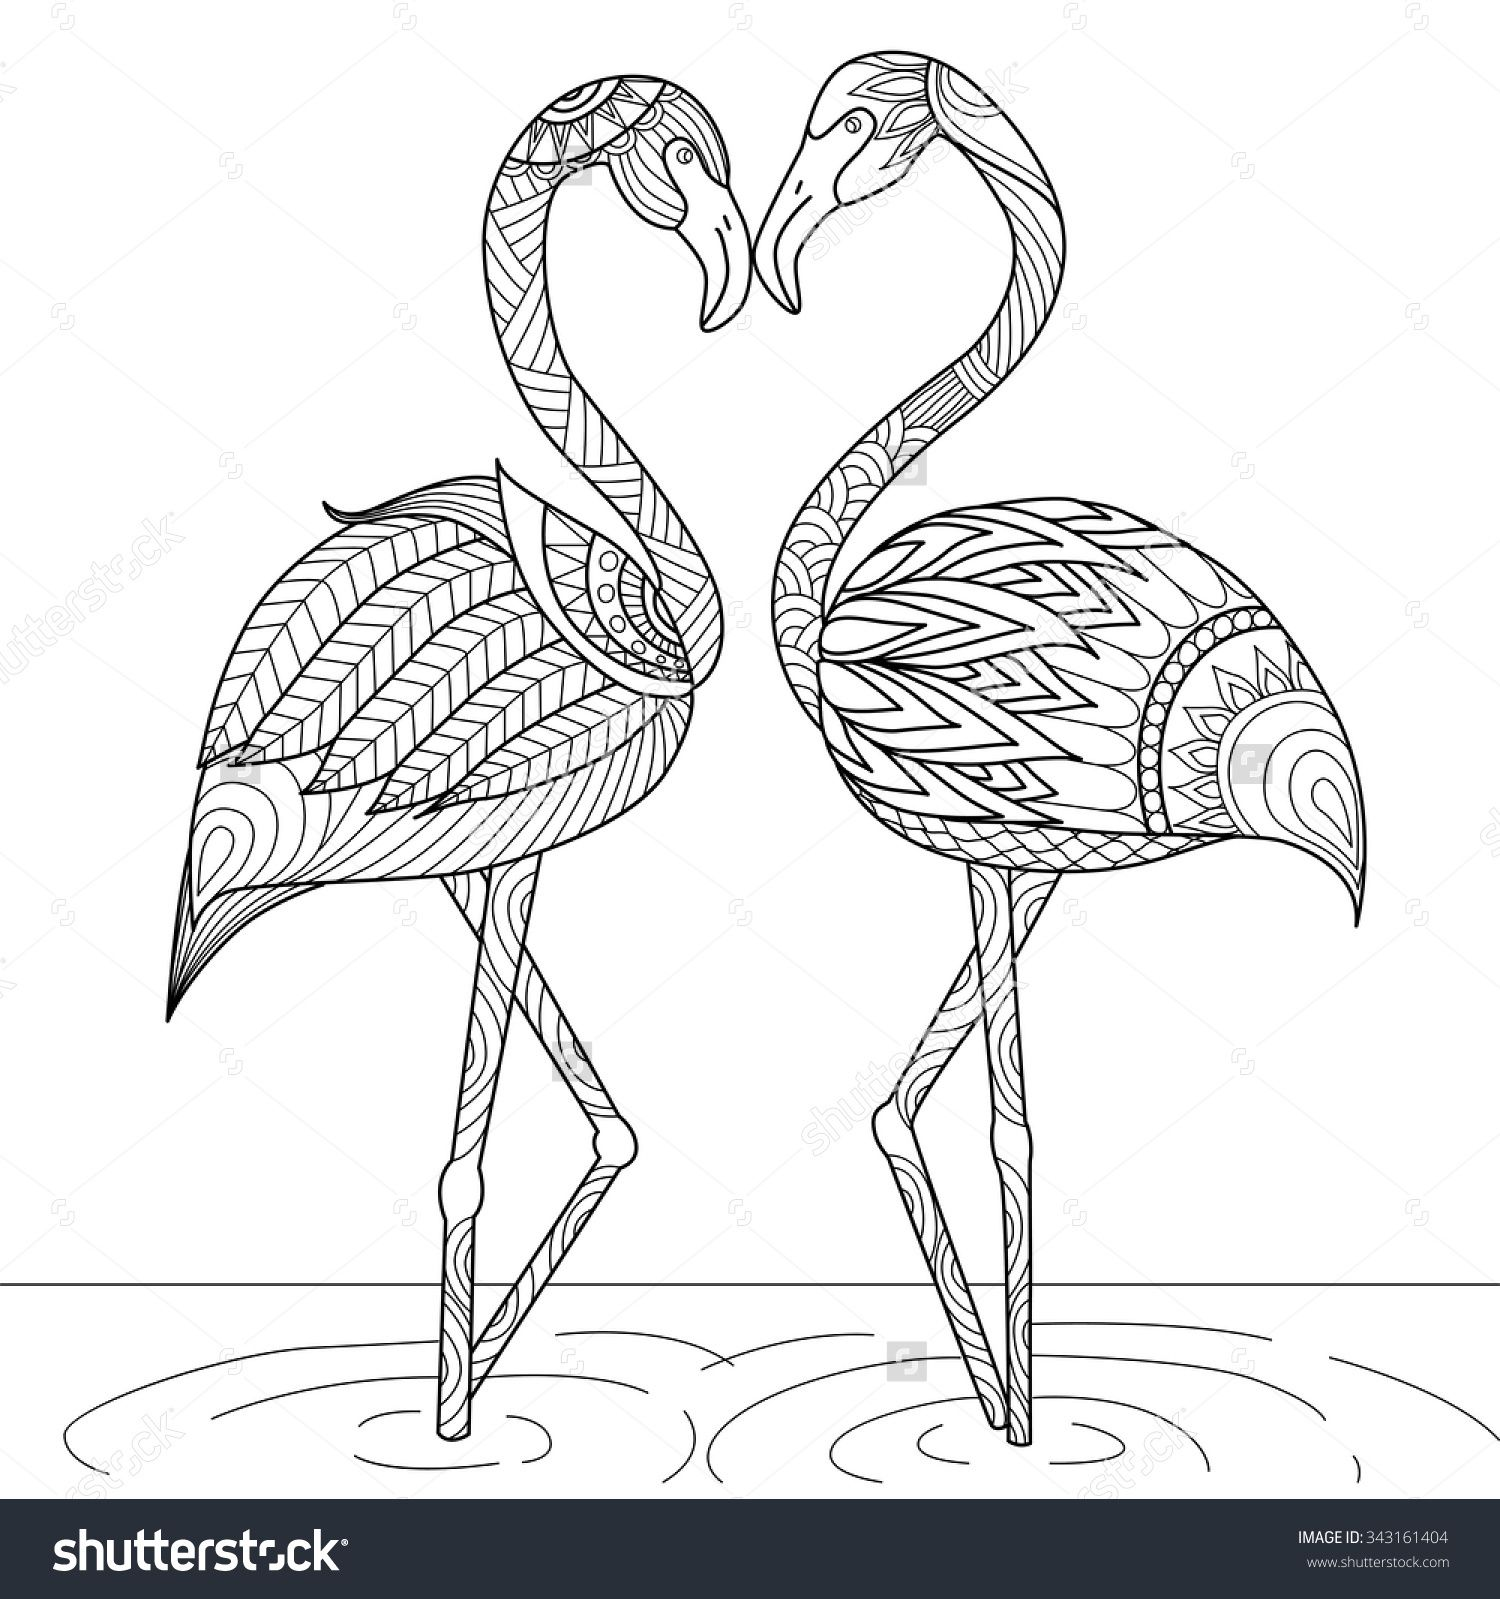 Colouring books for adults vancouver - Hand Drawn Flamingo Couple Zentangle Style For Coloring Book Invitation Card Logo Shirt